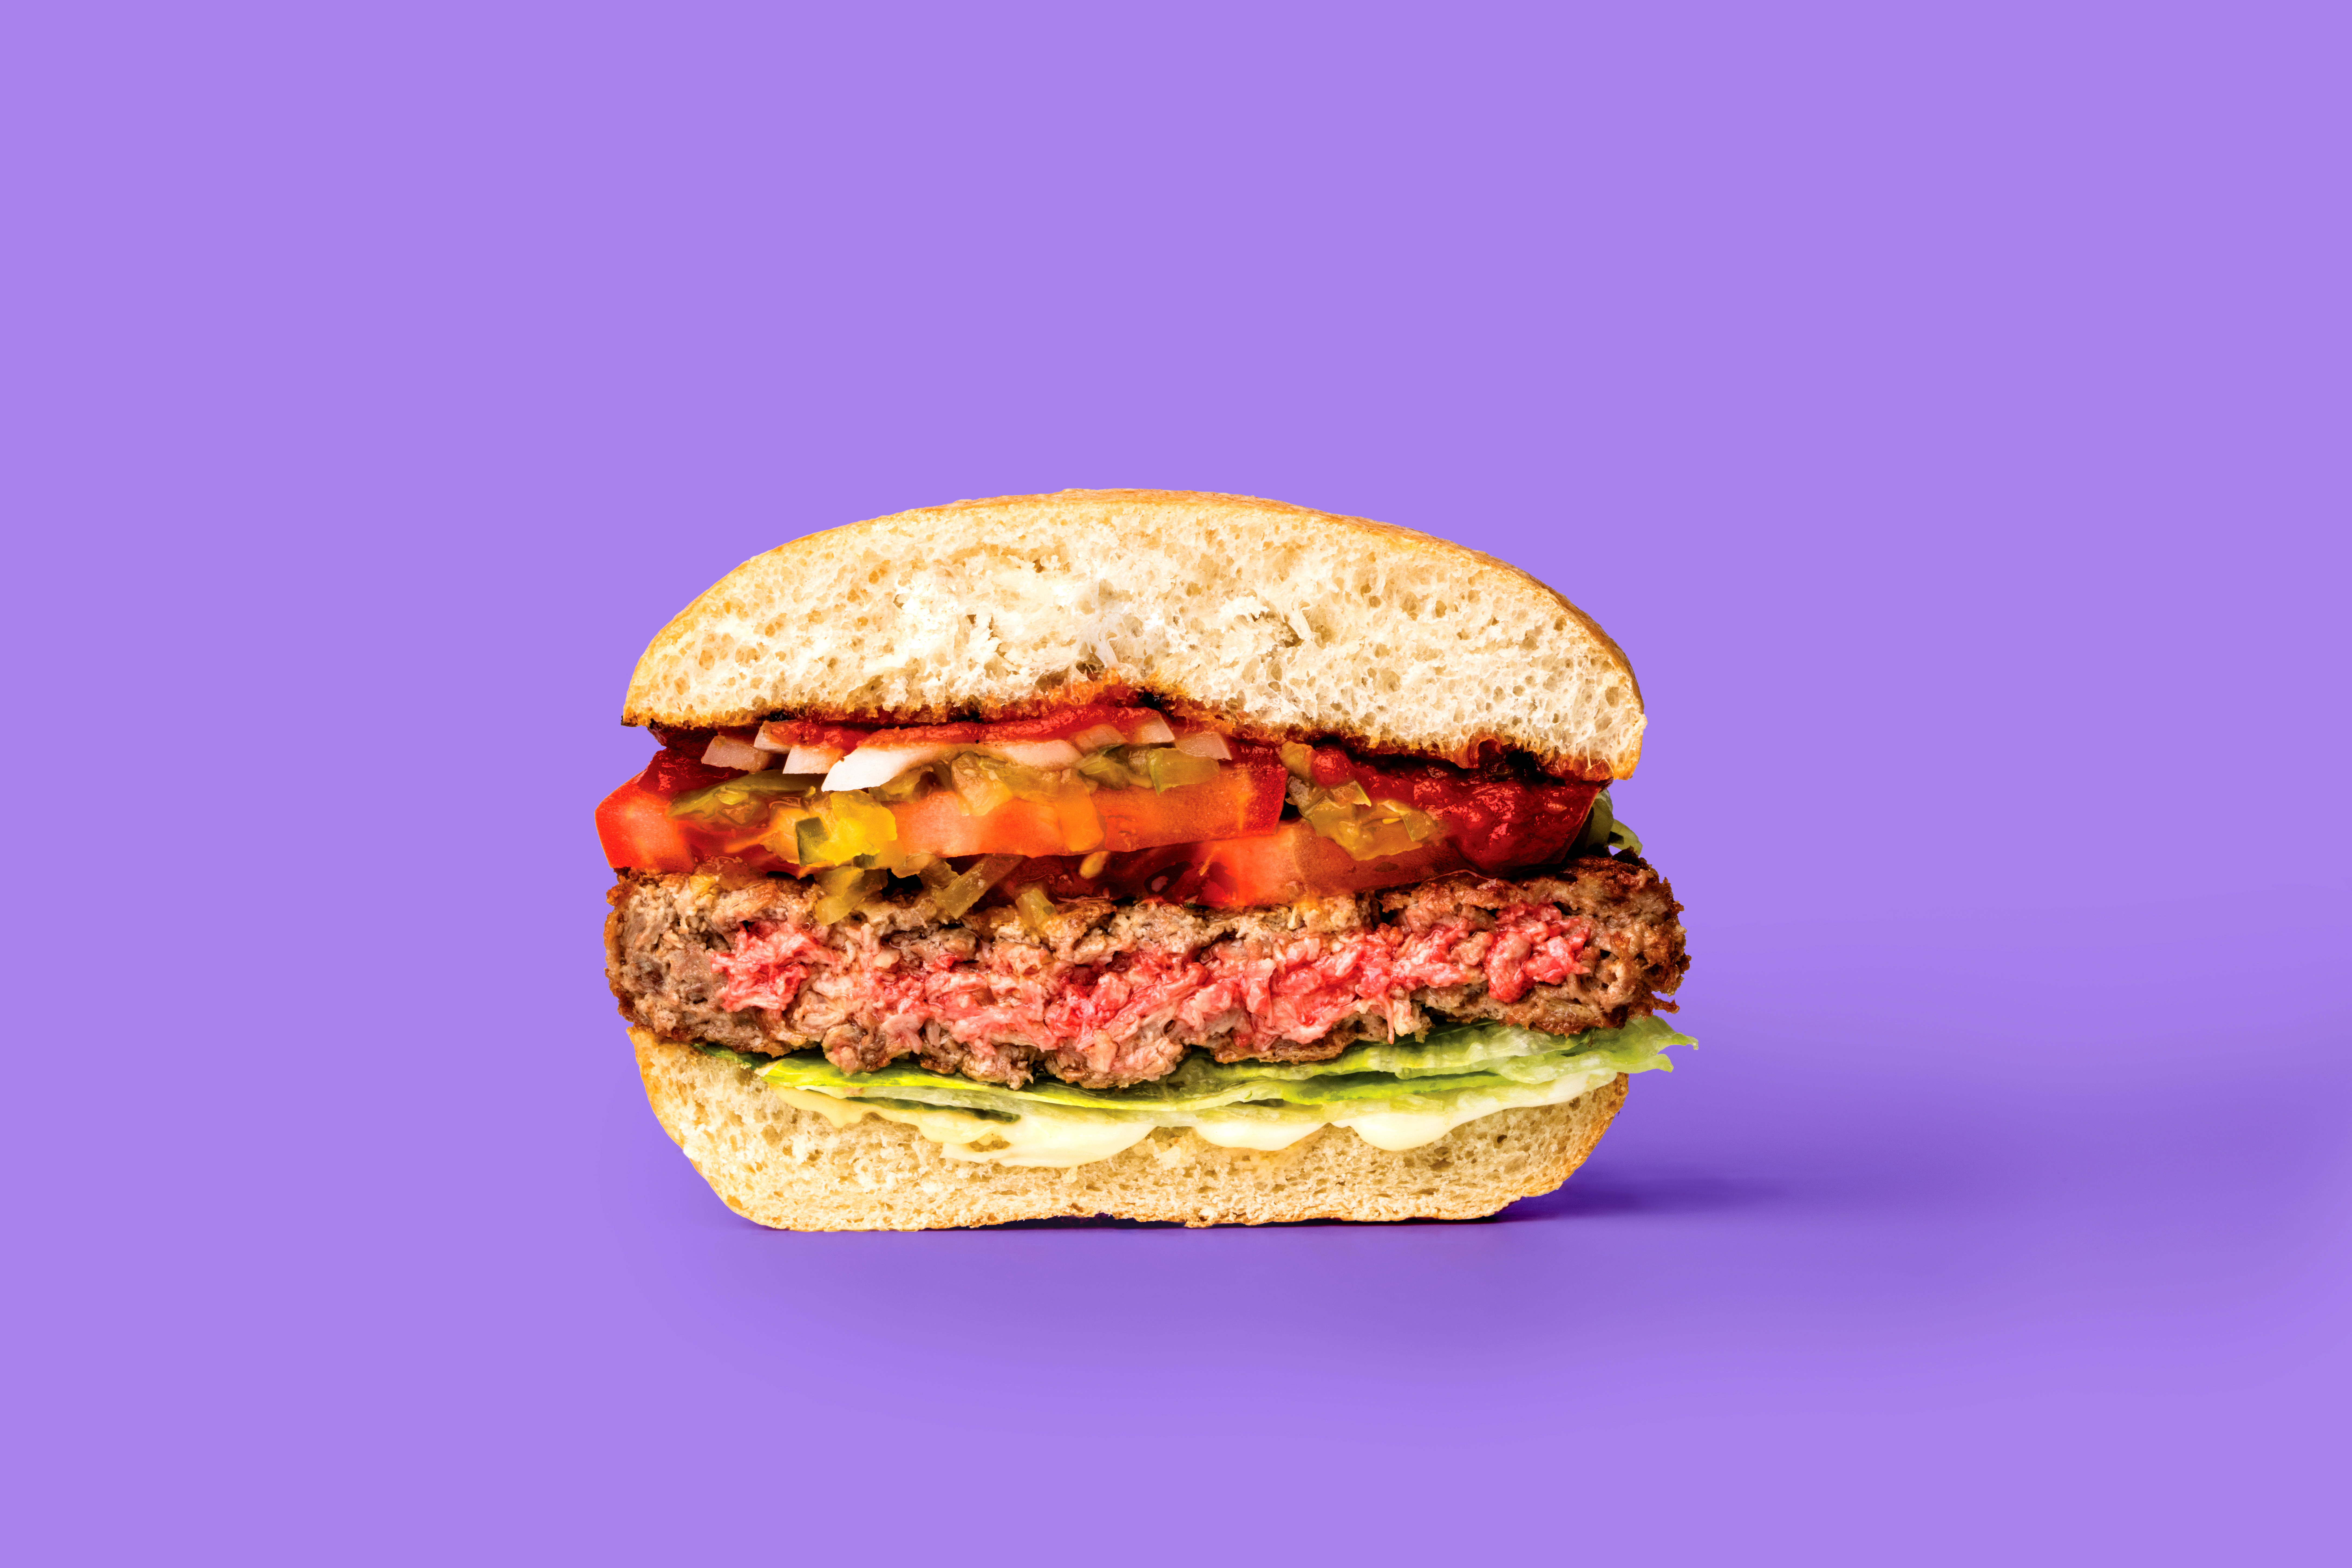 Impossible burger on a purple background